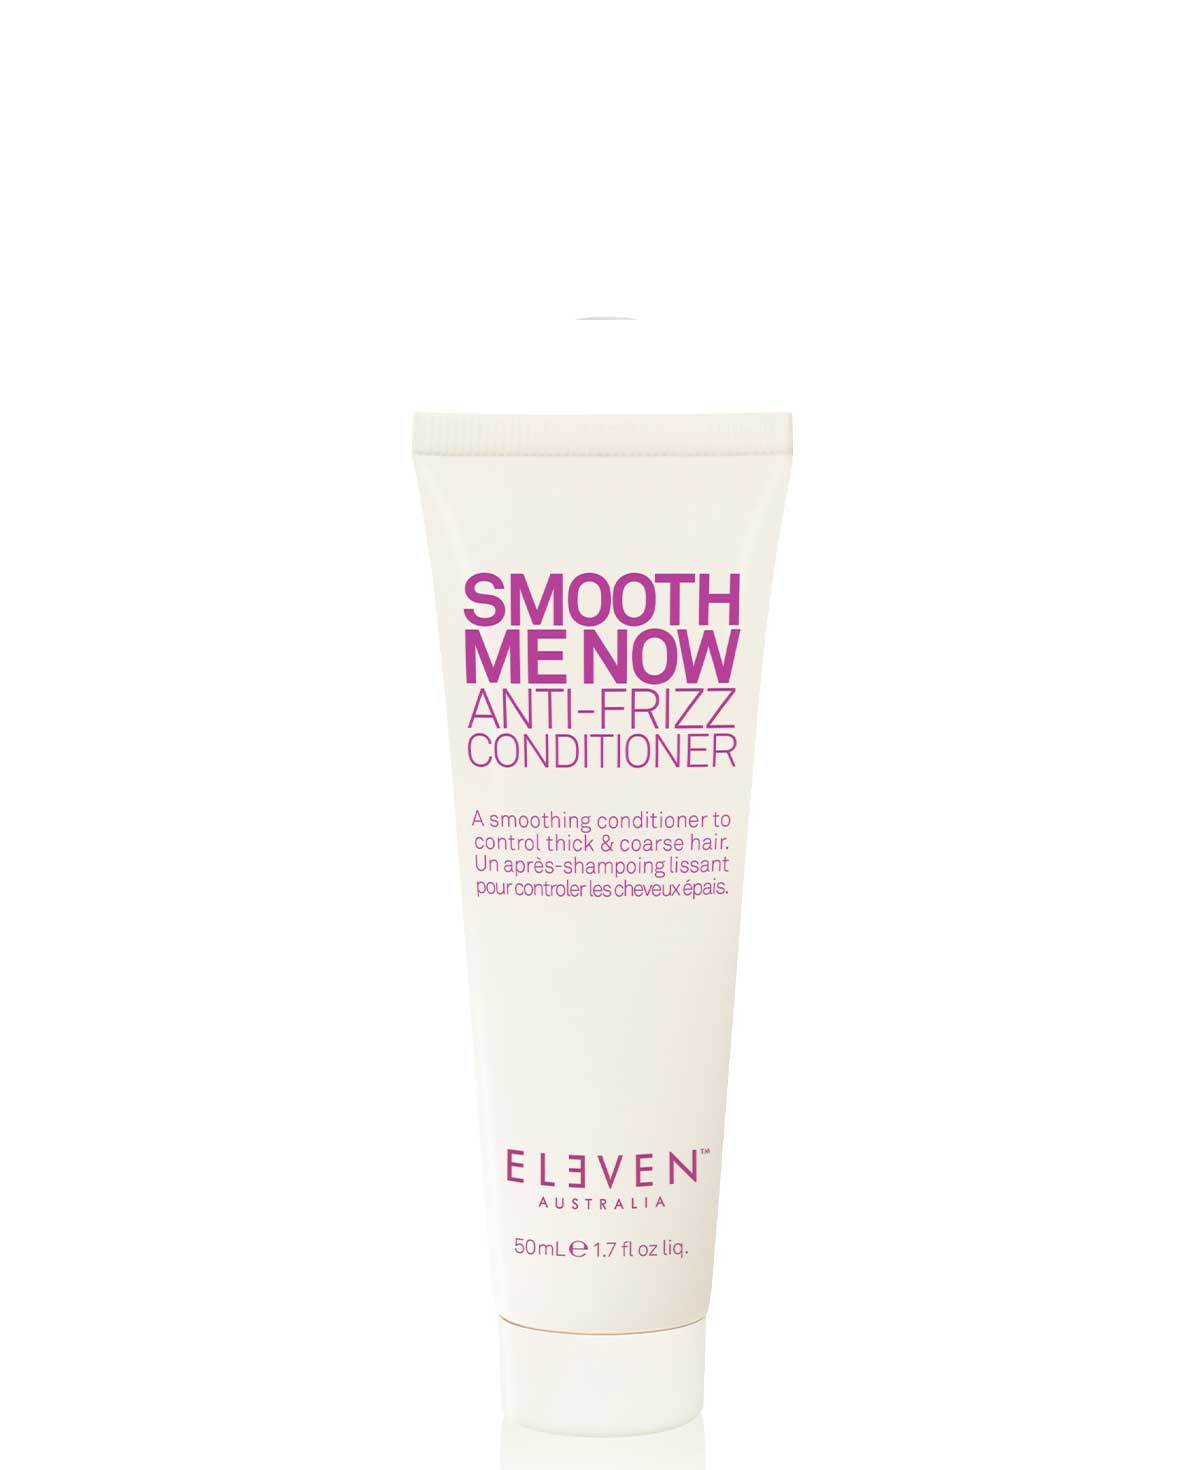 Eleven Smooth Me Now Anti-Frizz Conditioner 50ml